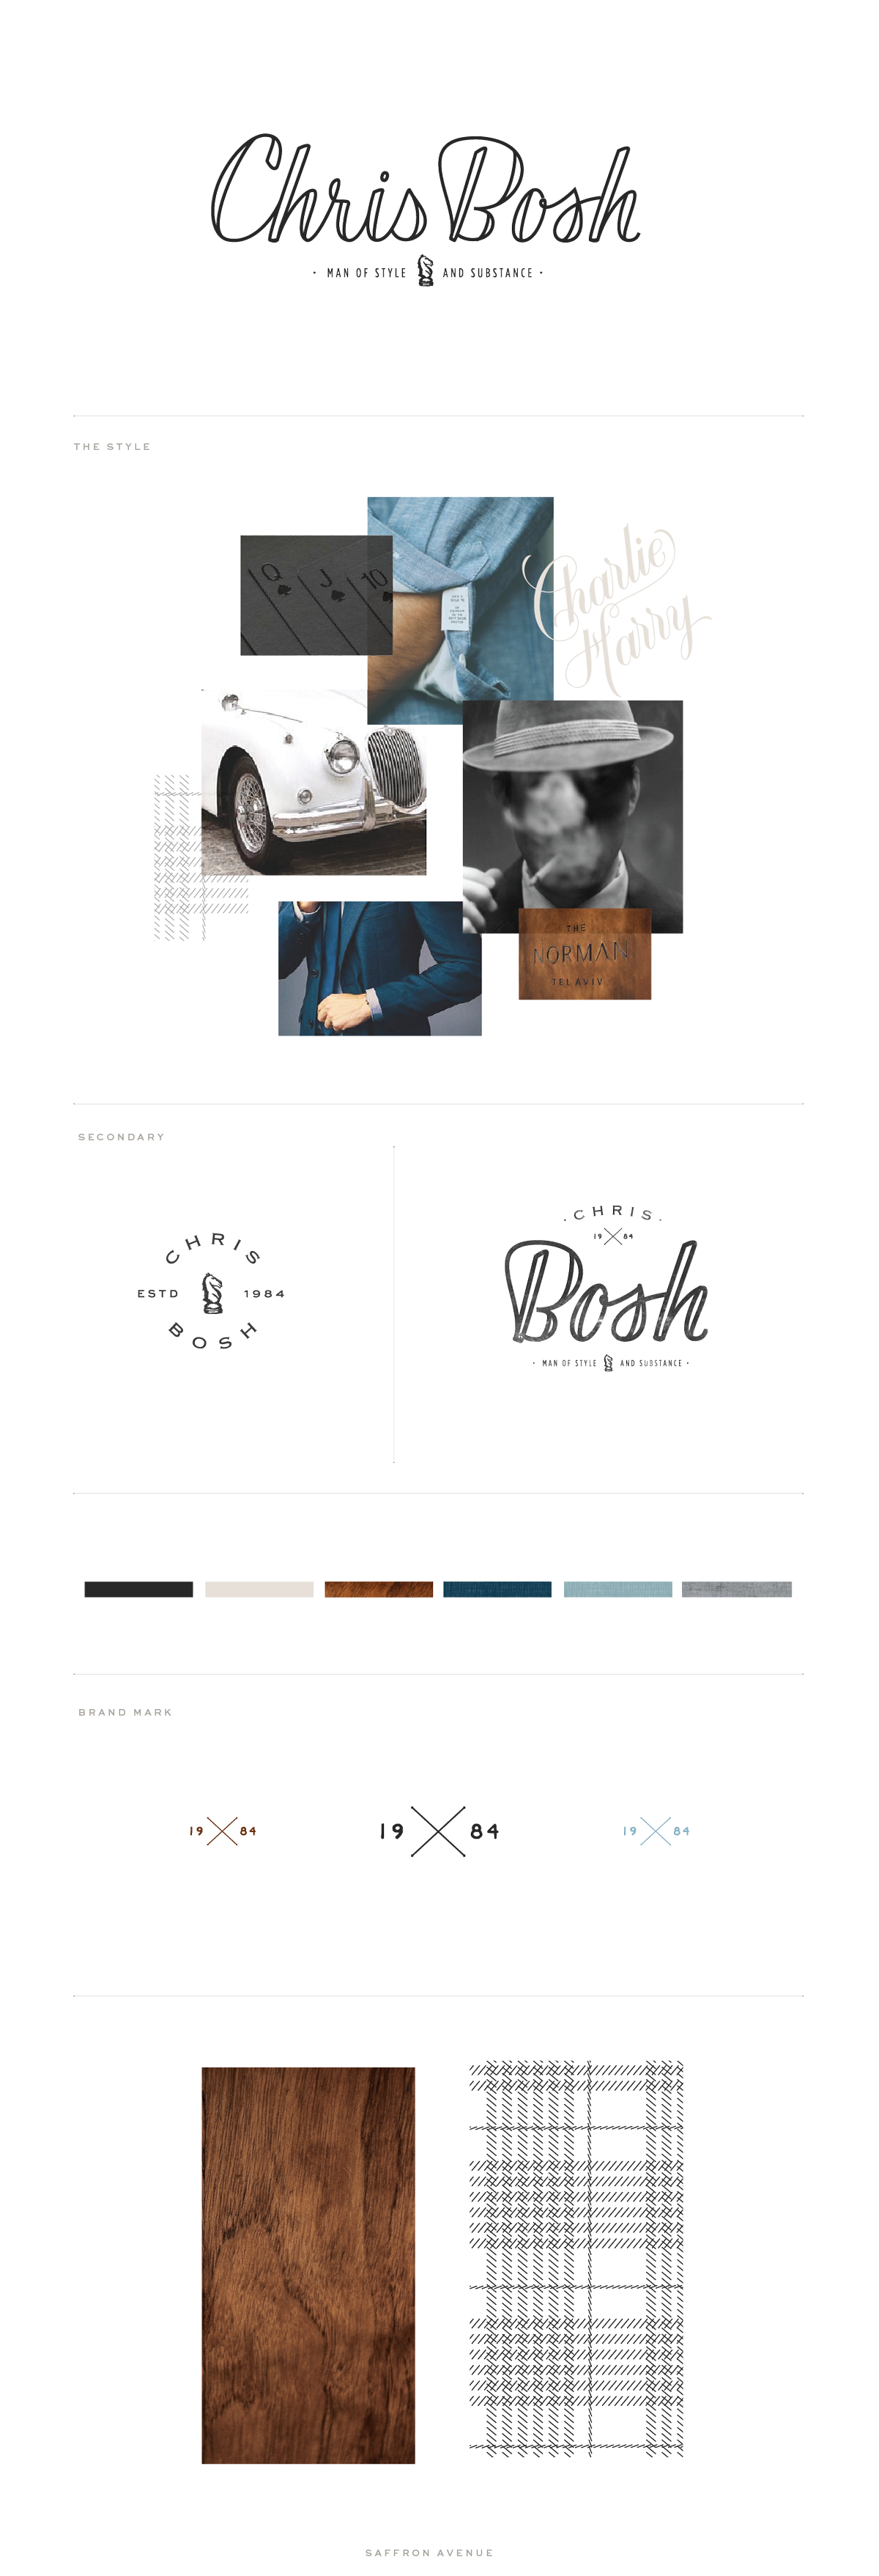 Modern Brand and Website Design - Modern Calligraphy Logo - Saffron Avenue - Brand Board, Inspiration Board, Modern Logo Design, Website Design, Website Layout